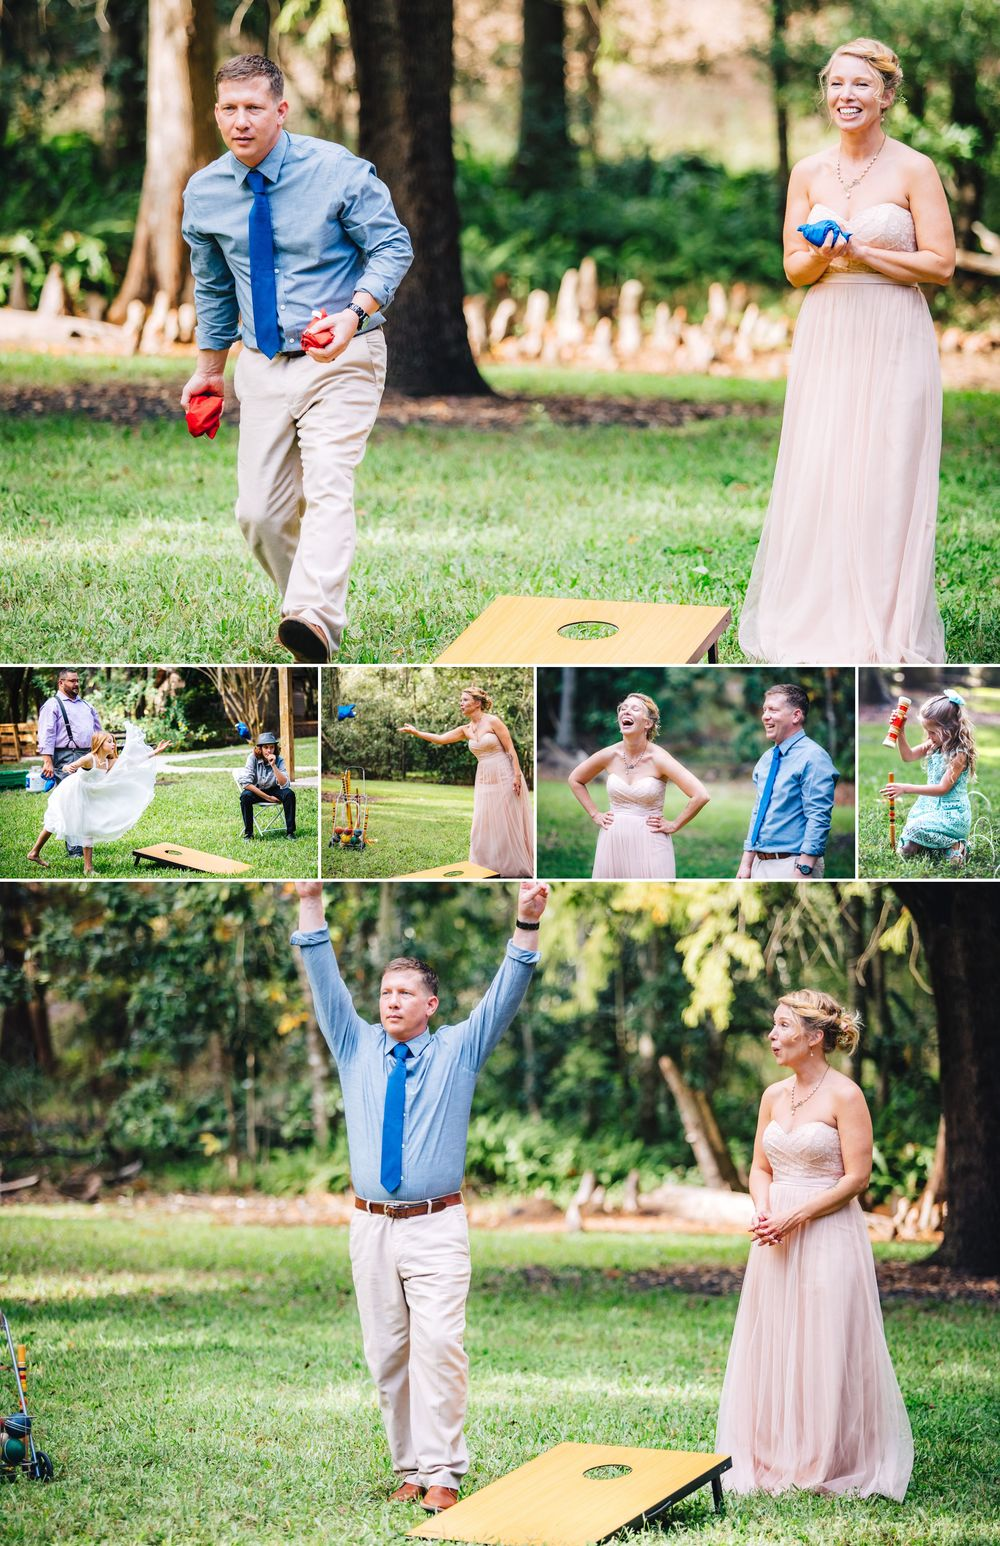 Orlando Outdoor Wedding Langford Park - Blog ShainaDeCiryan.com 23.jpg